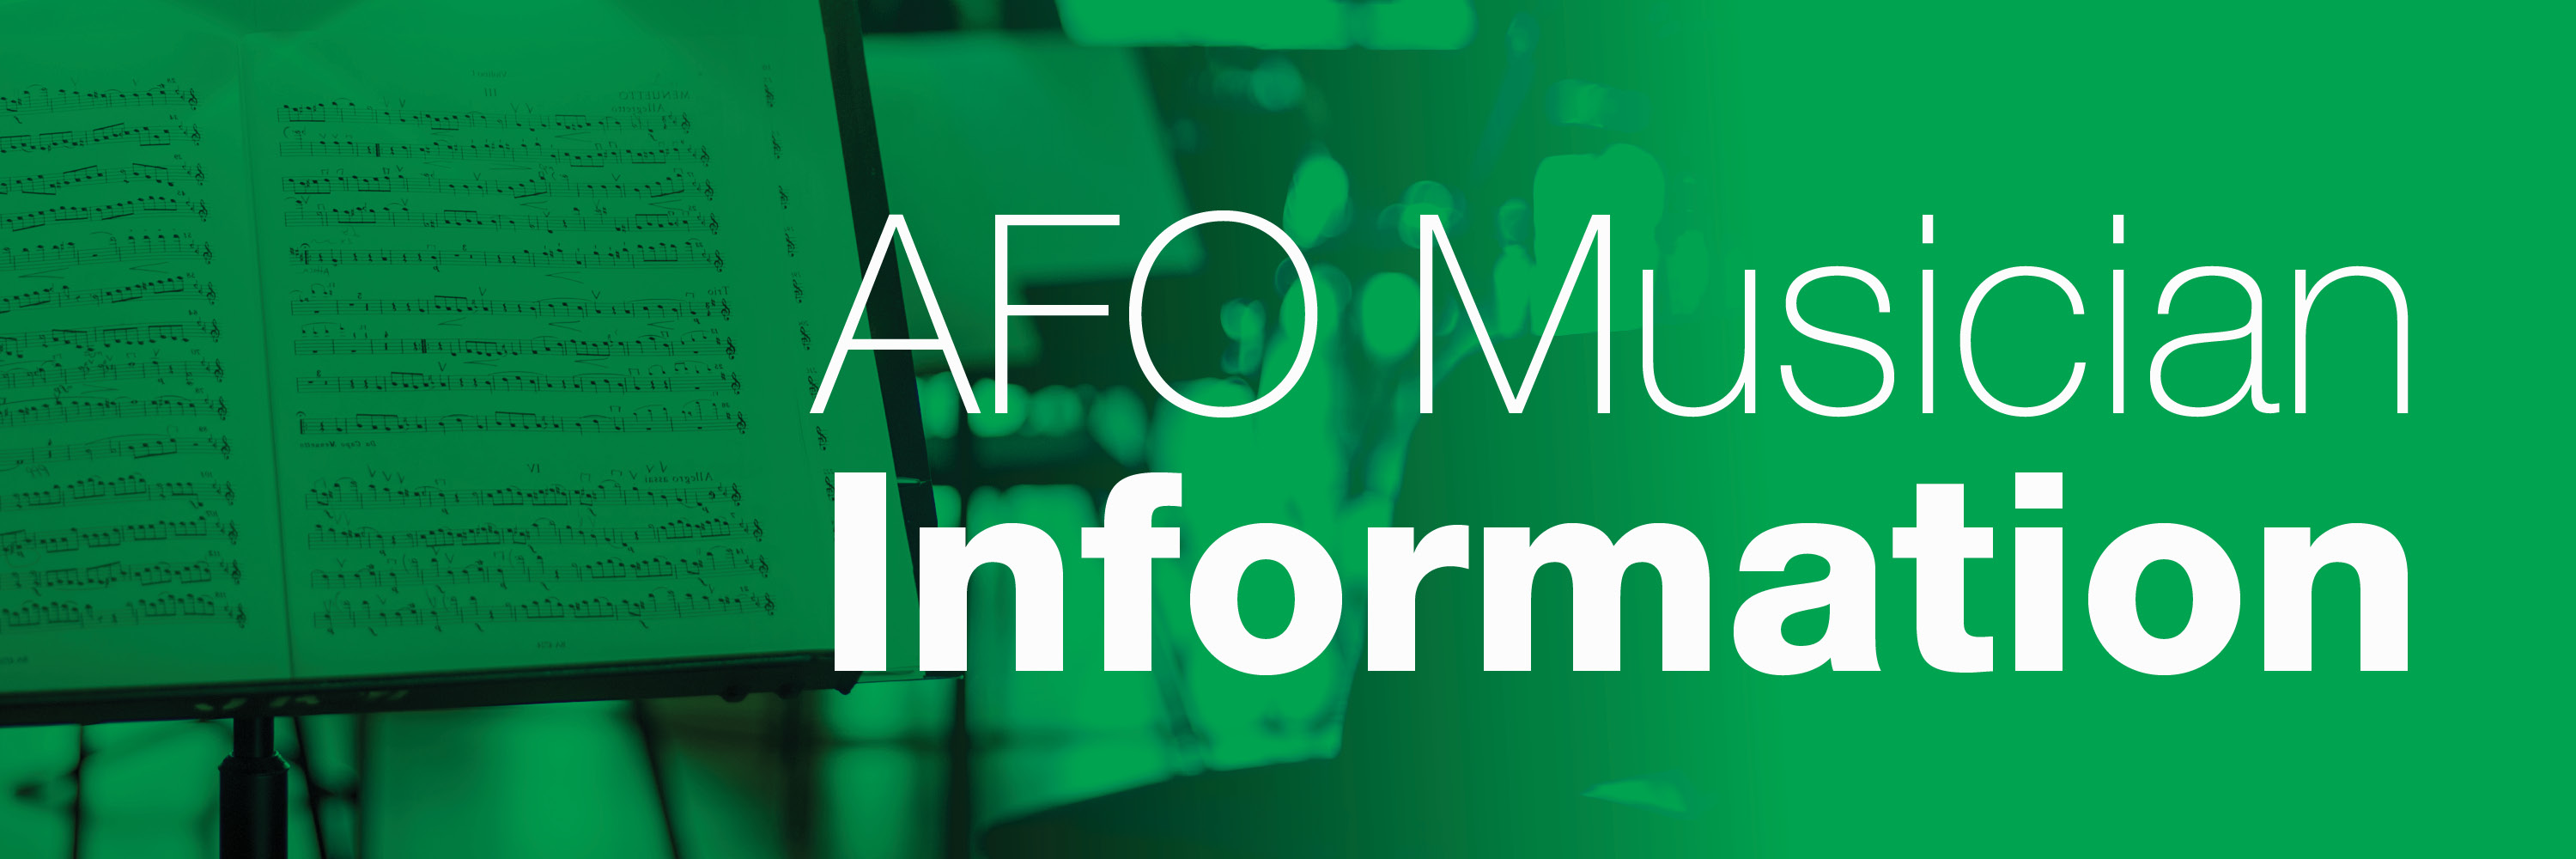 AFO Musician Information